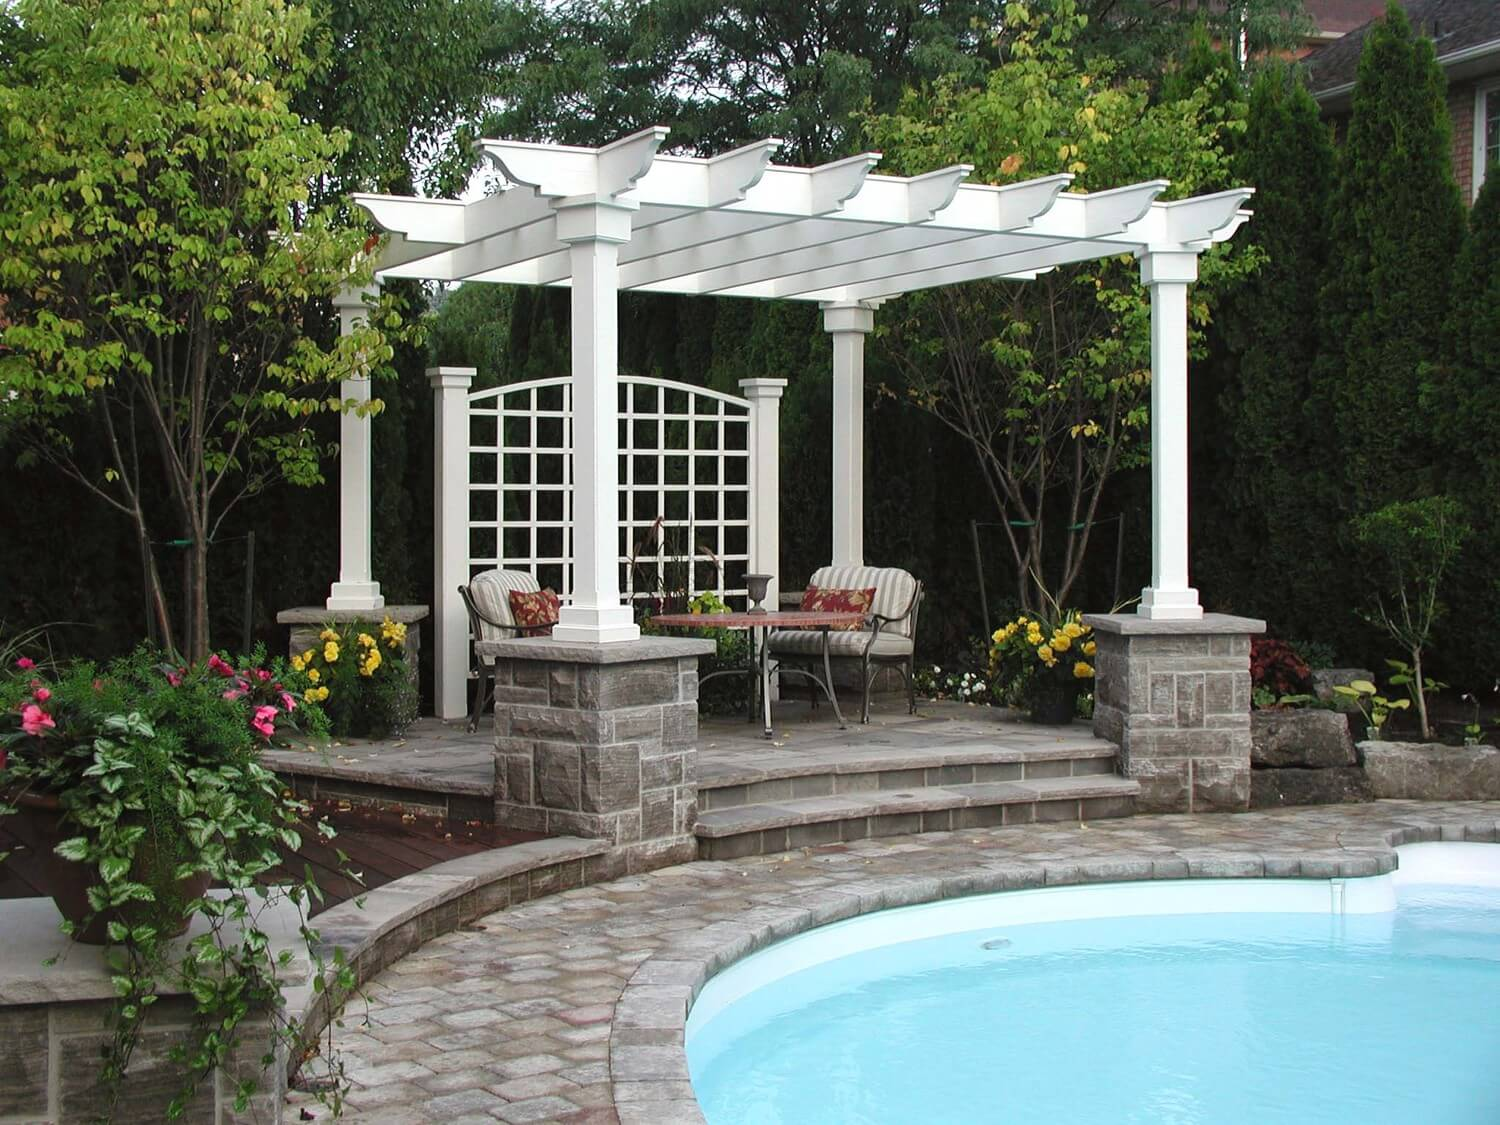 Garden Living - Cabanas, Pergolas and Outdoor Structures 5.jpg